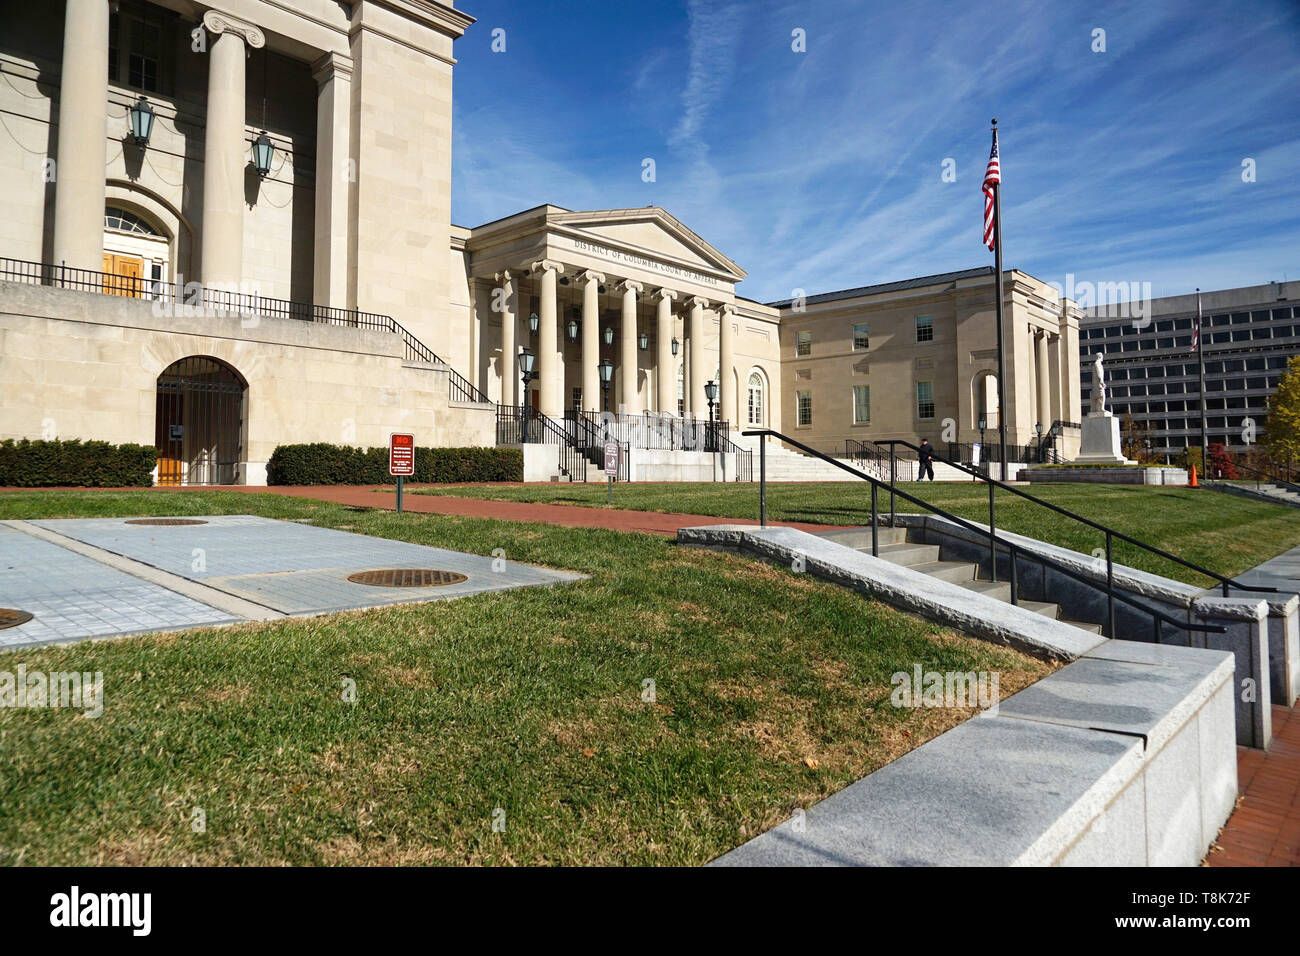 District of Columbia Court of Appeals in Judiciary Square. Washington D.C.USA - Stock Image